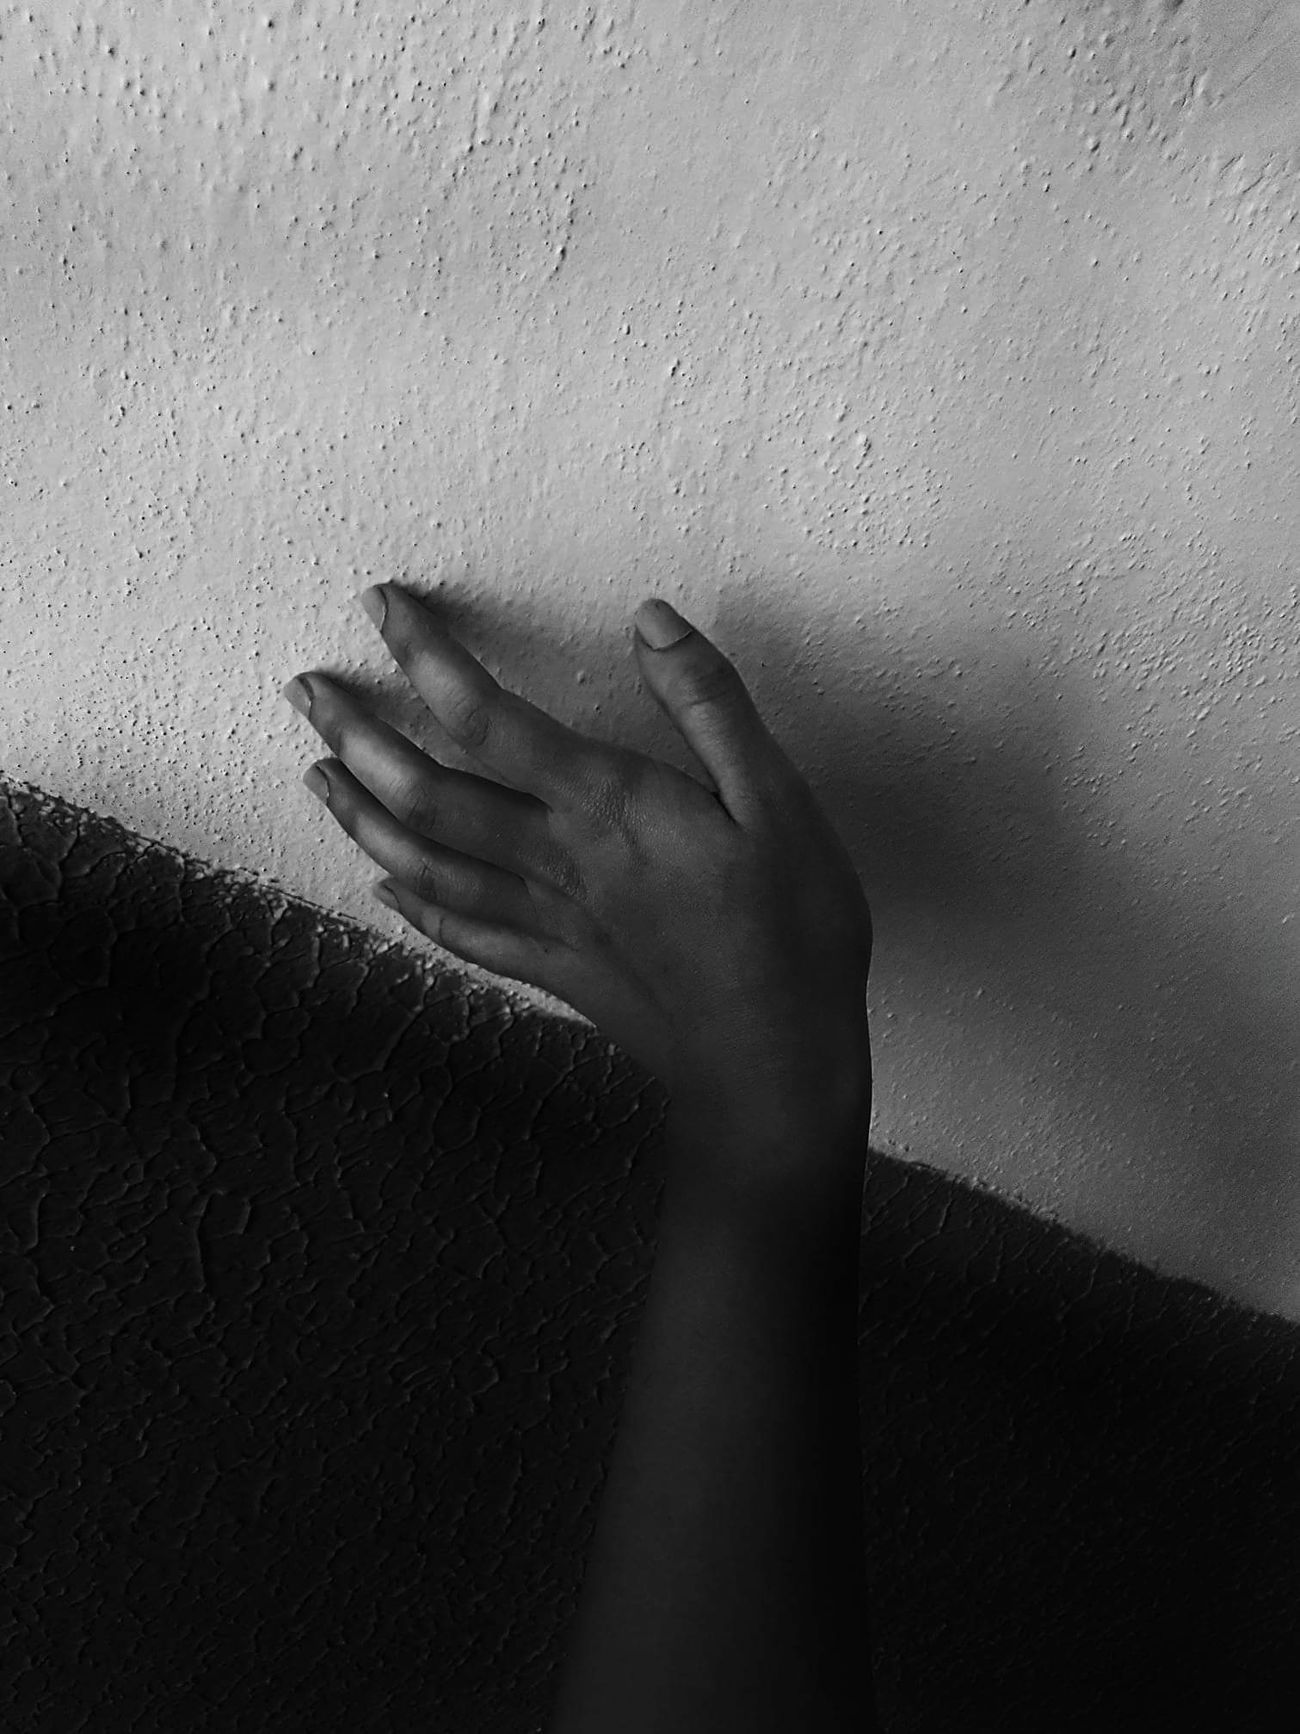 Soft touch Wall #touch #blackandwhite Hand Shadow Indoors  Human Hand Human Body Part One Person Adult Day